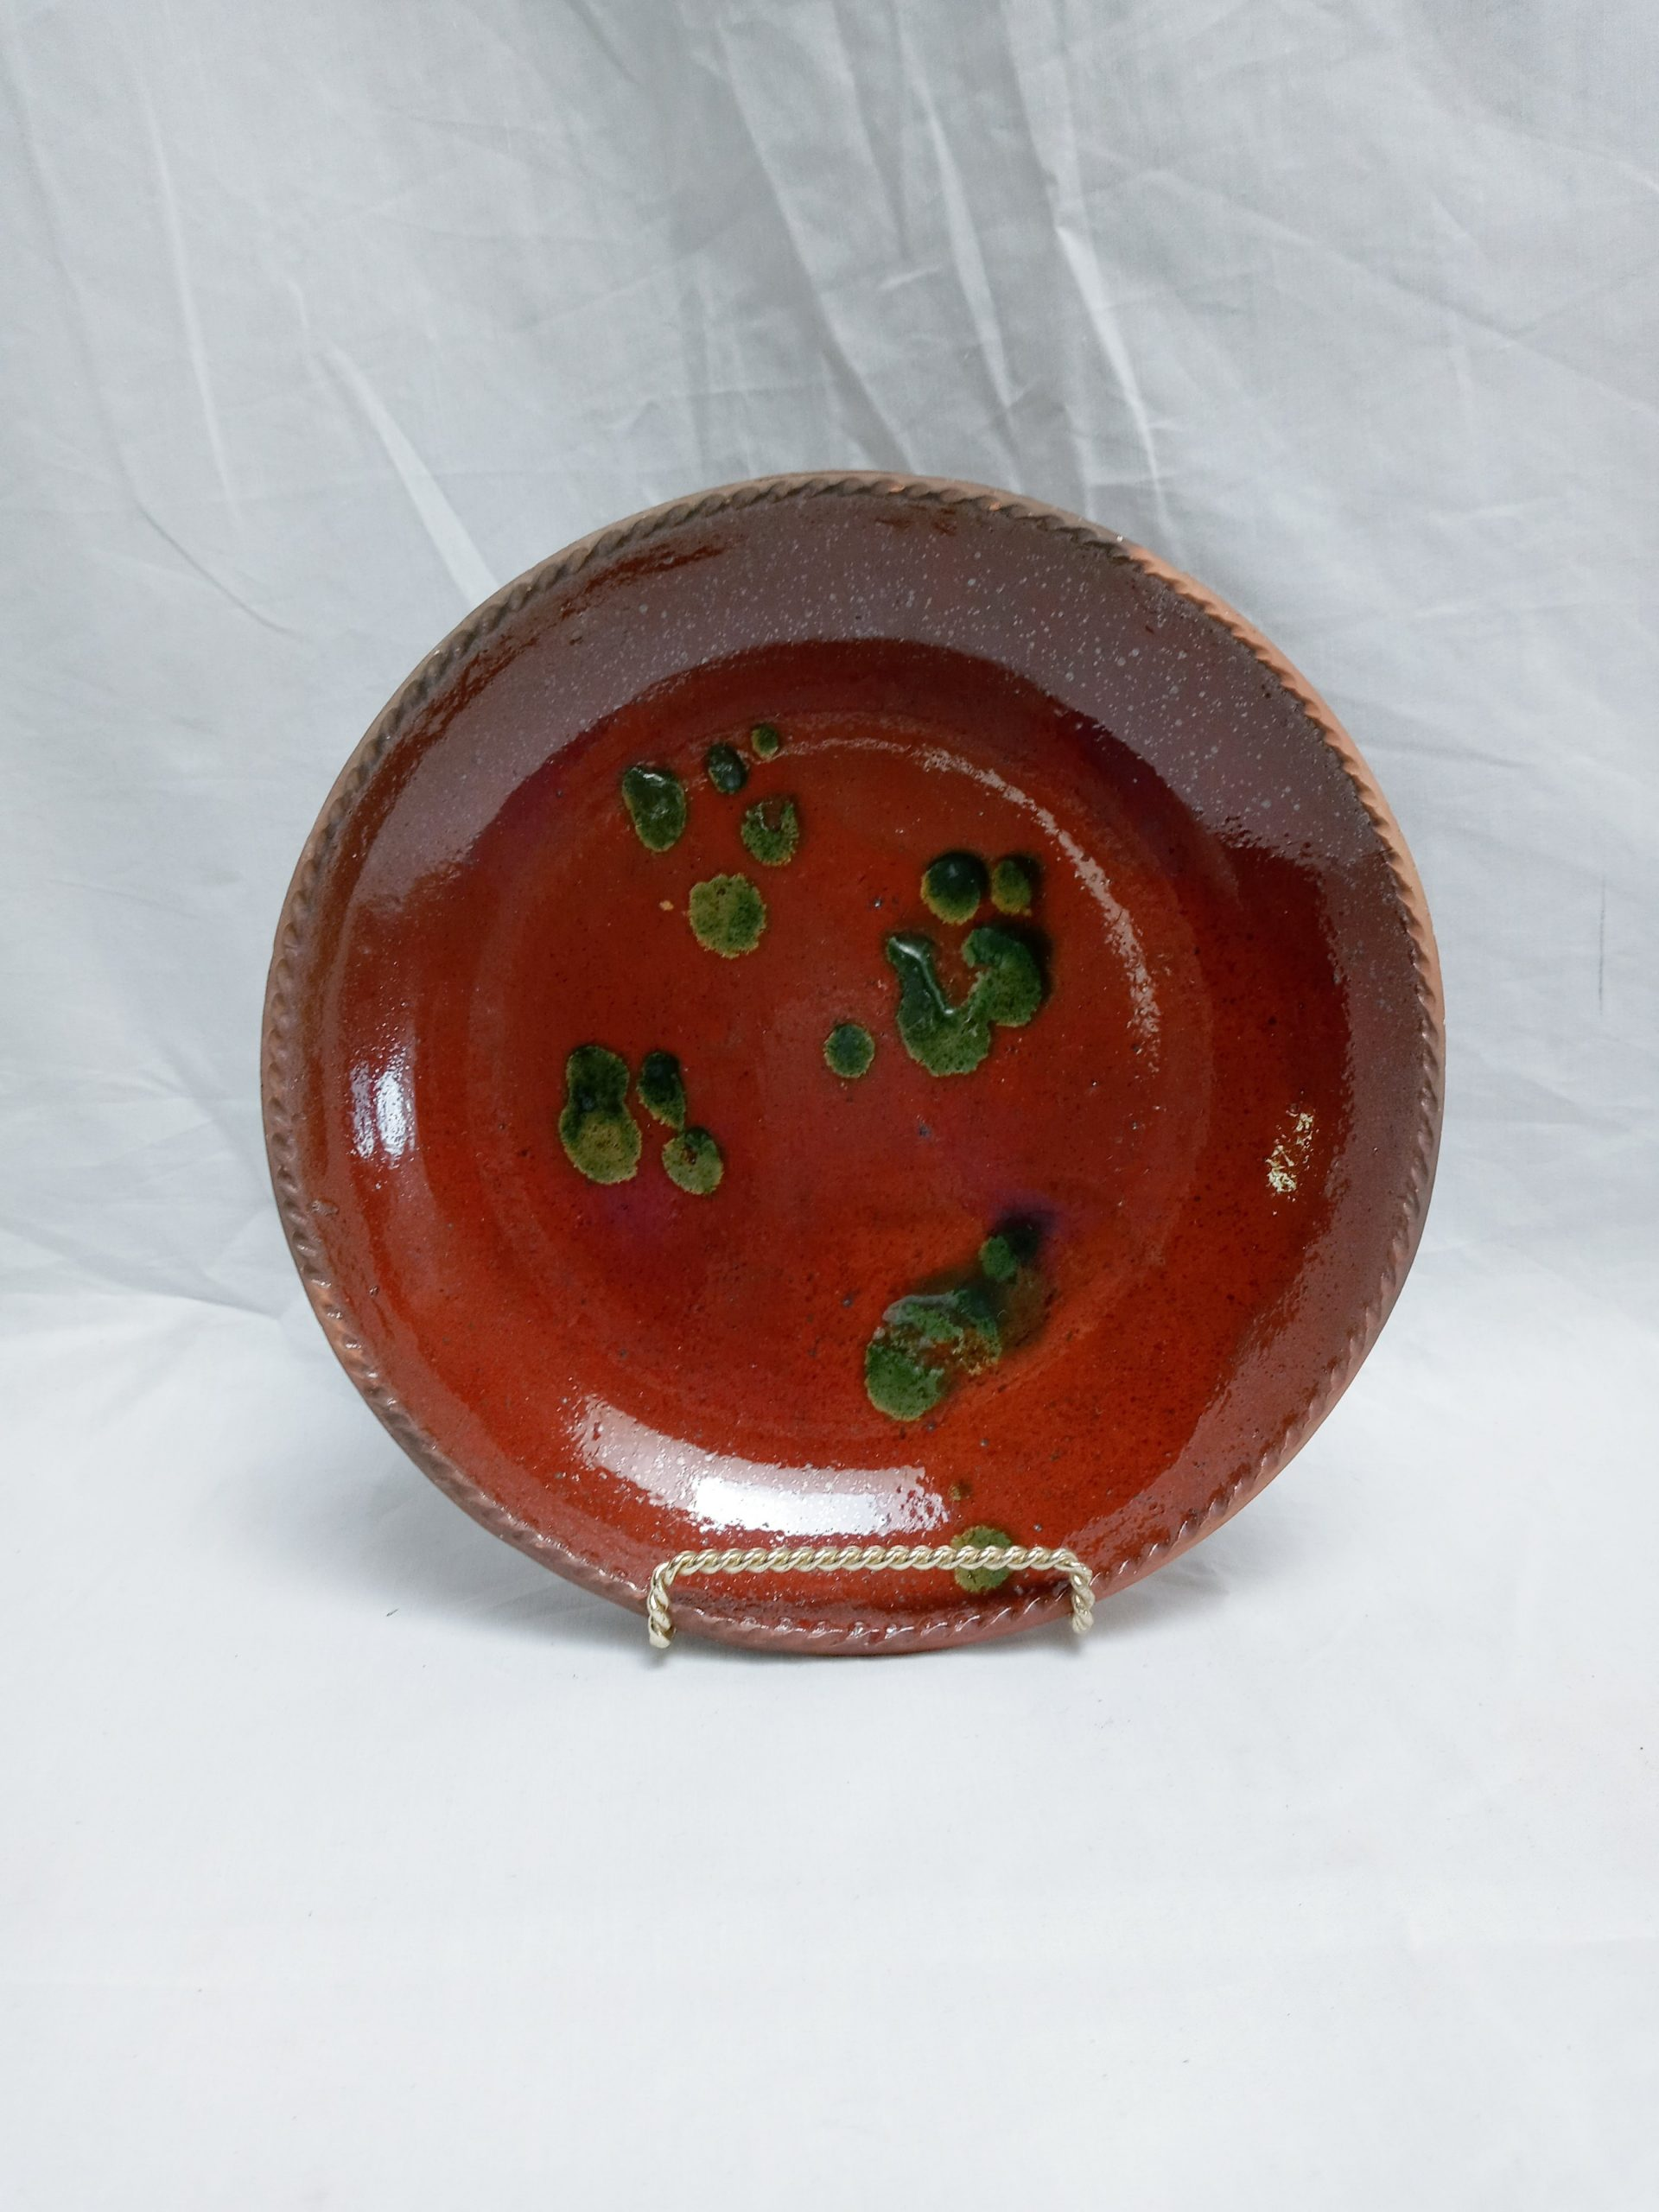 18-31463 Redware Pottery Plate, Singer Pottery family, green and yellow slip decoration, unused condition. Image